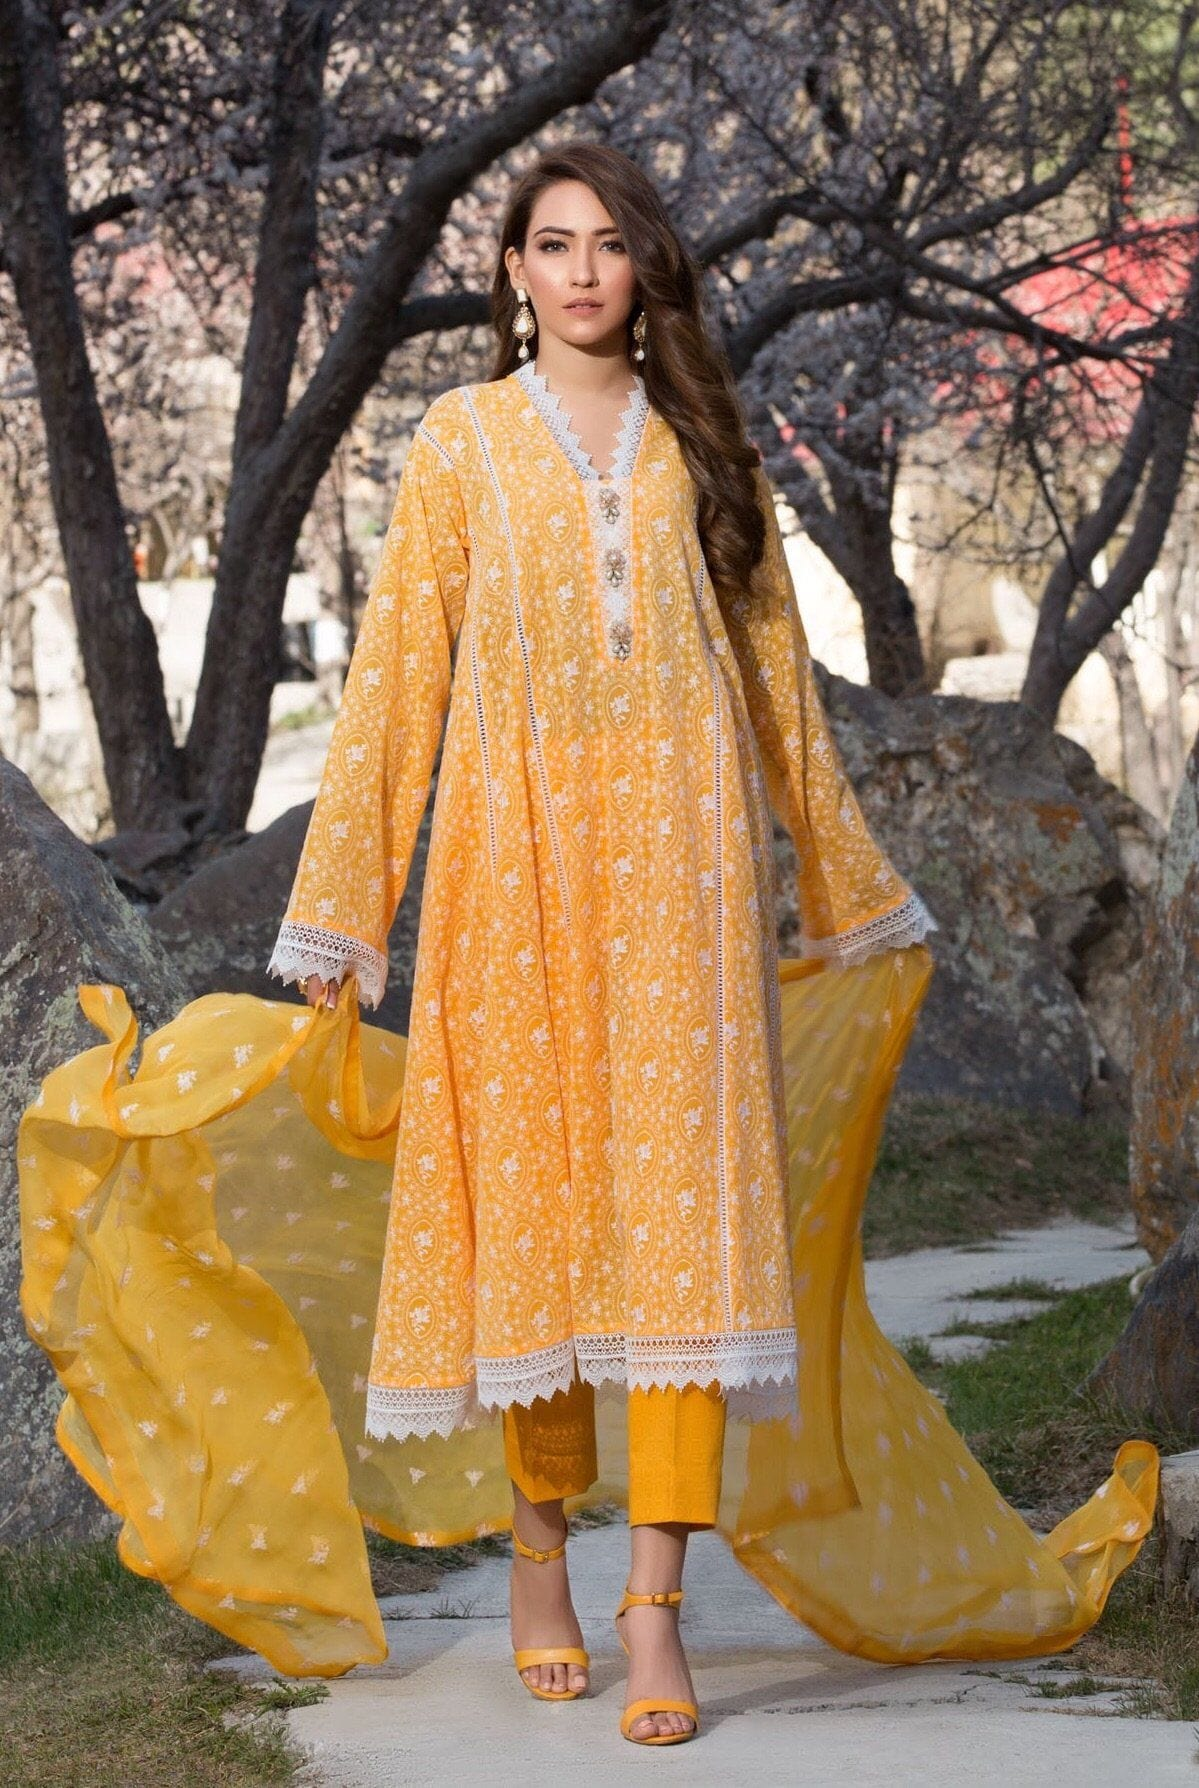 Bareeze 103 L-Embroided 3pc linen dress with embroided chiffon dupatta - gracestore.pk